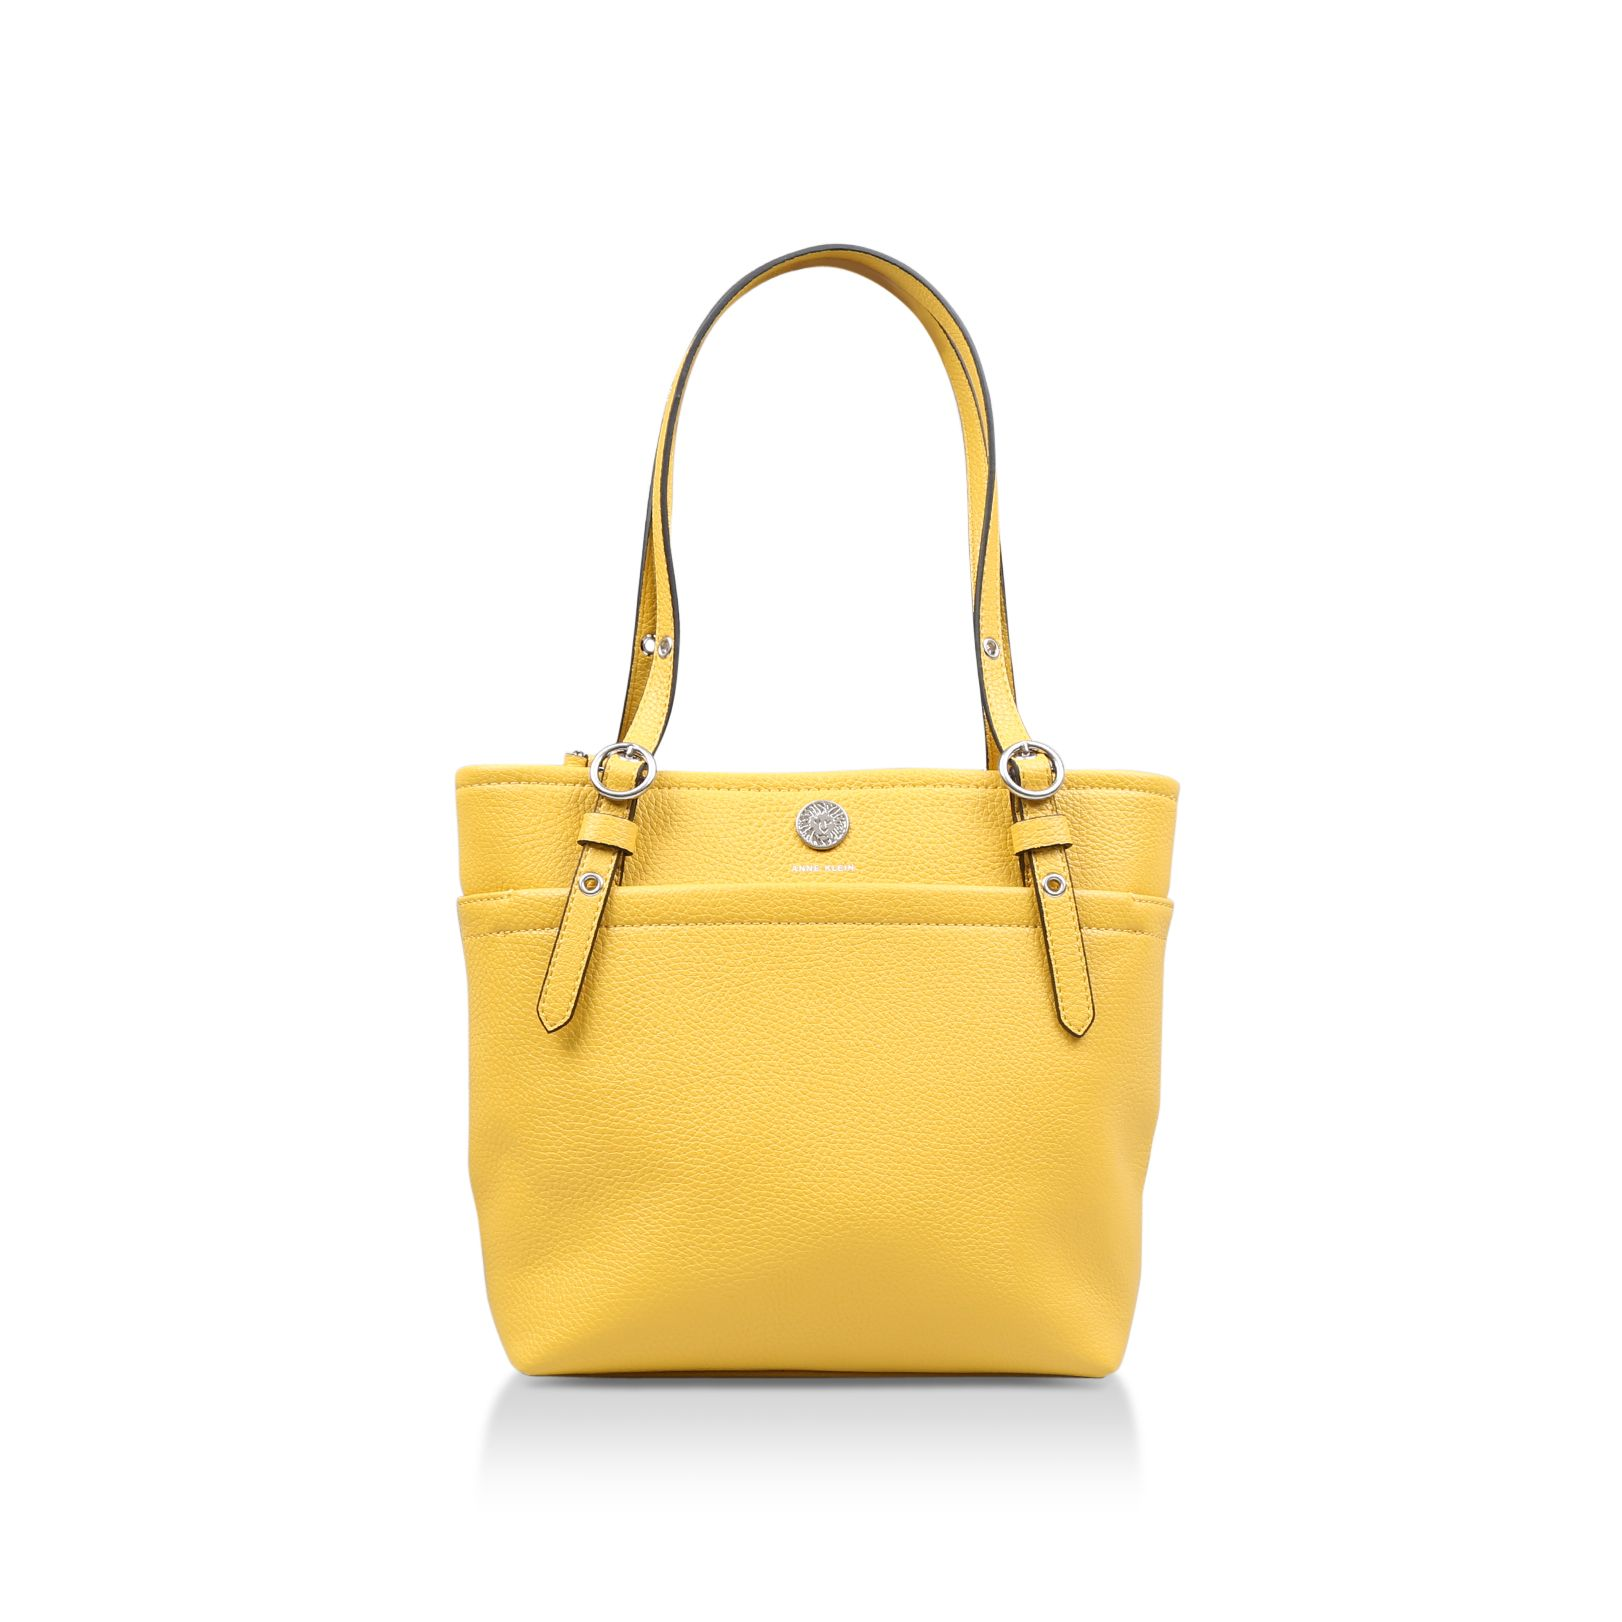 Anne Klein Pocket D1 Tote Bag, Yellow